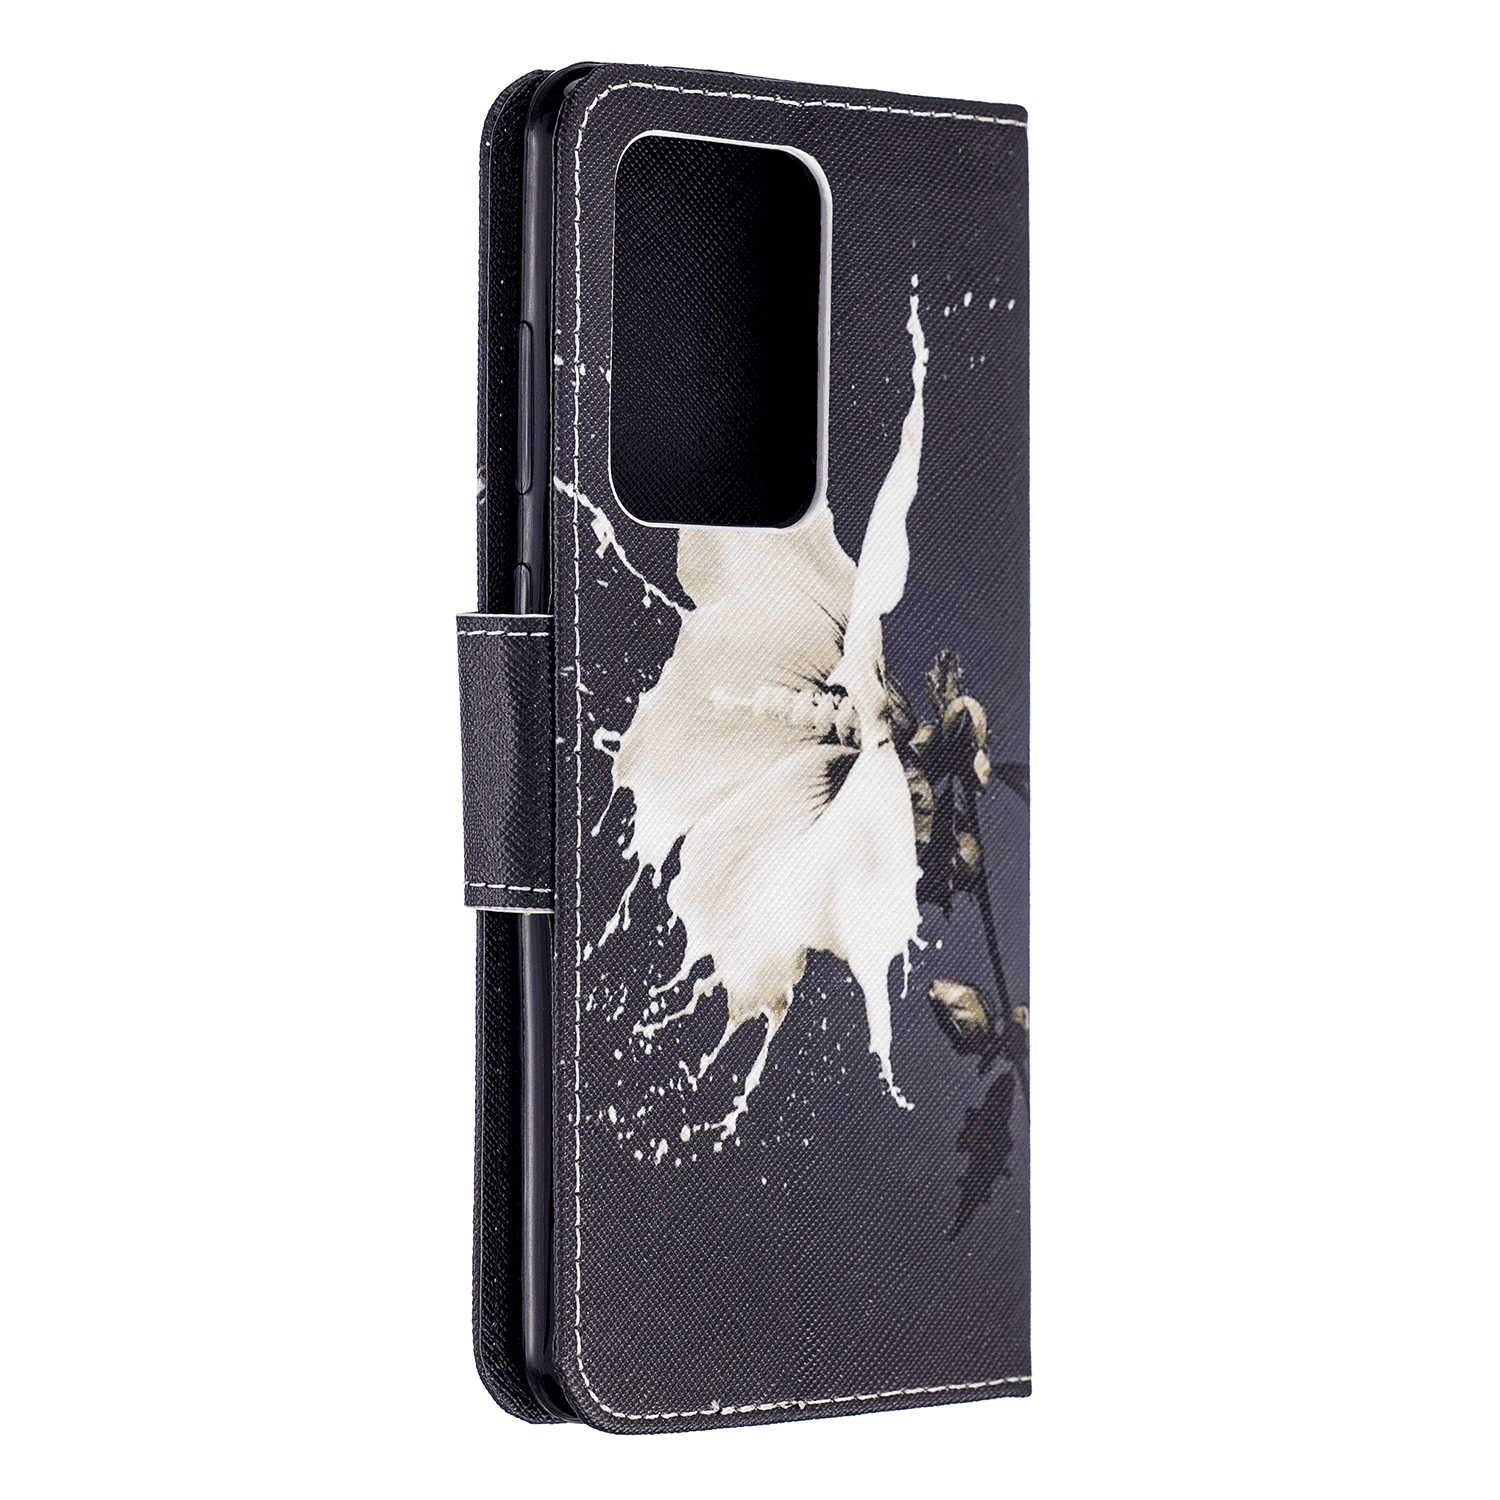 Stylish Cover Compatible with iPhone X owl Leather Flip Case Wallet for iPhone X